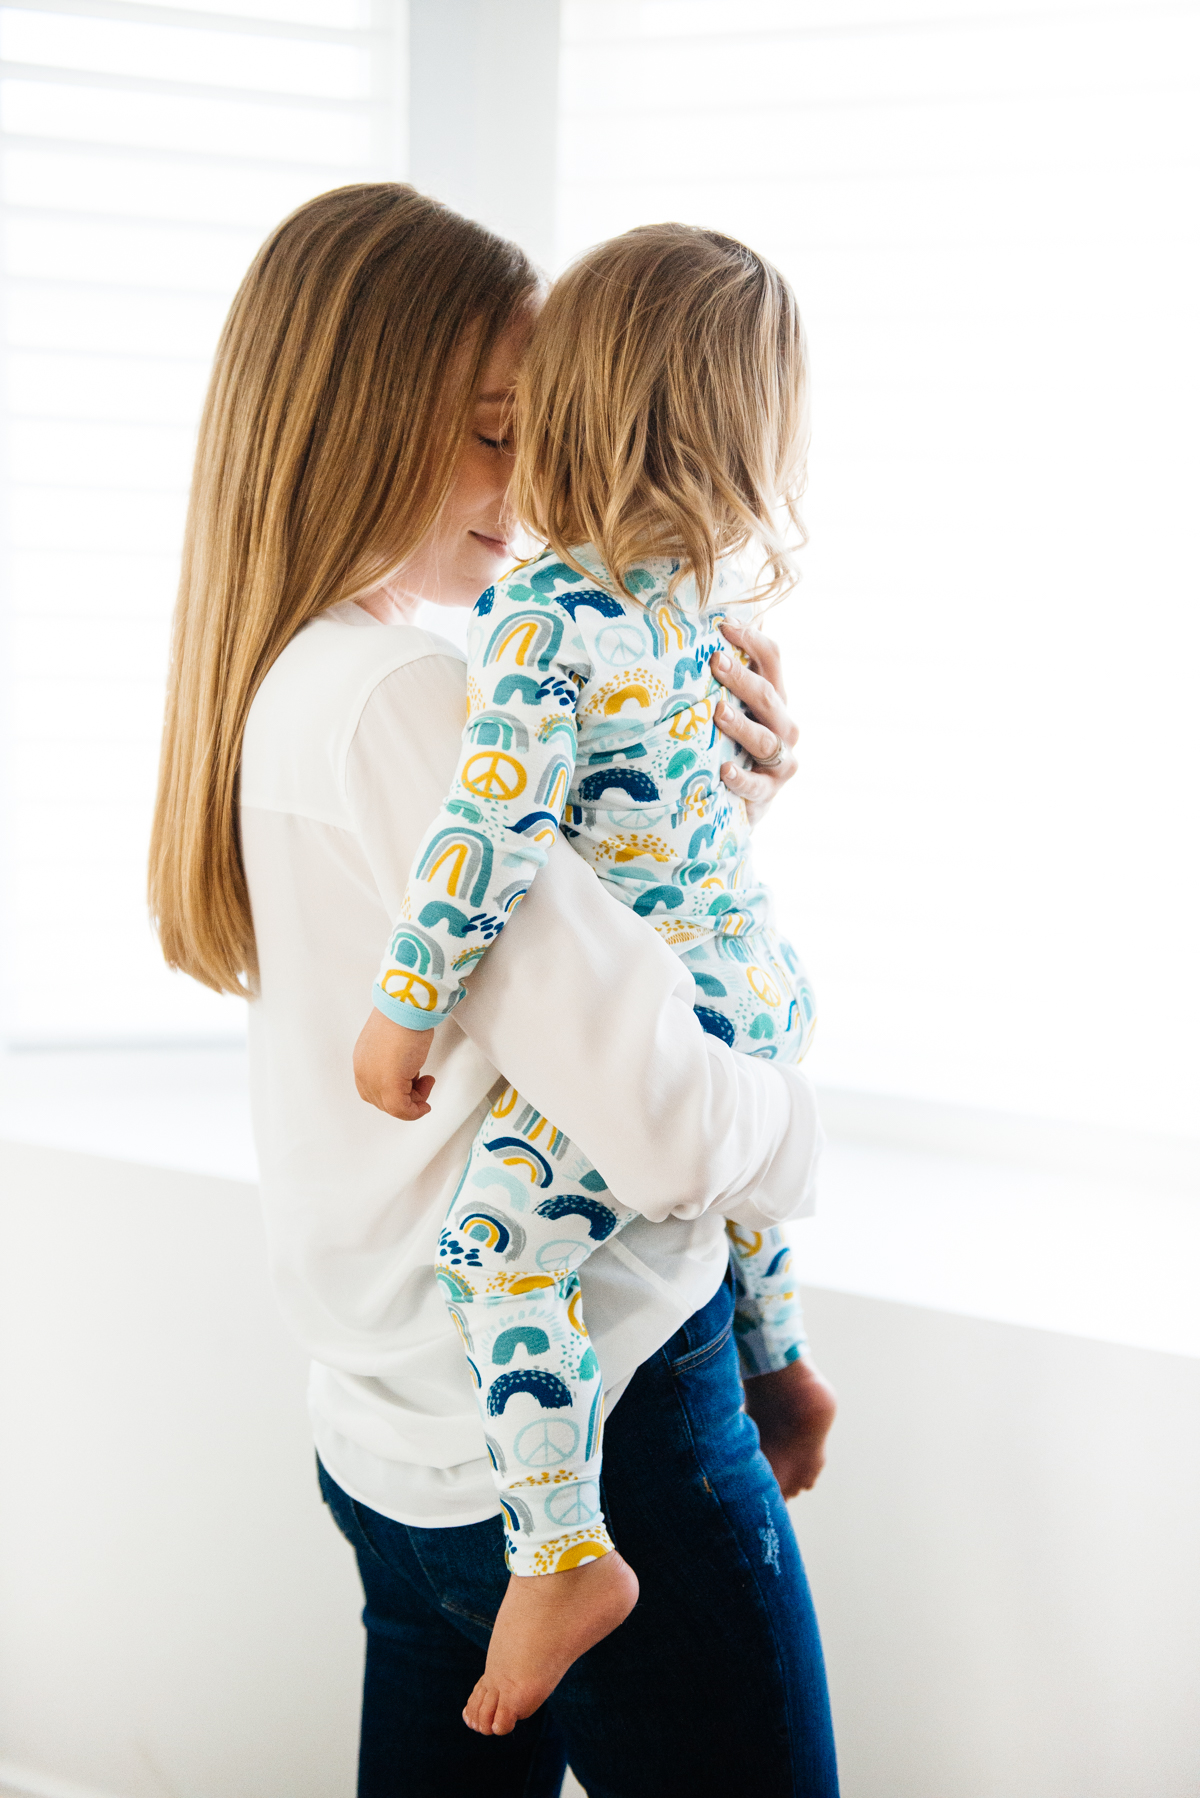 Kimberly Lapides of eatsleepwear and son in Clover Baby & Kids pajamas celebrating Rainbow Baby, IVF, and Infertility